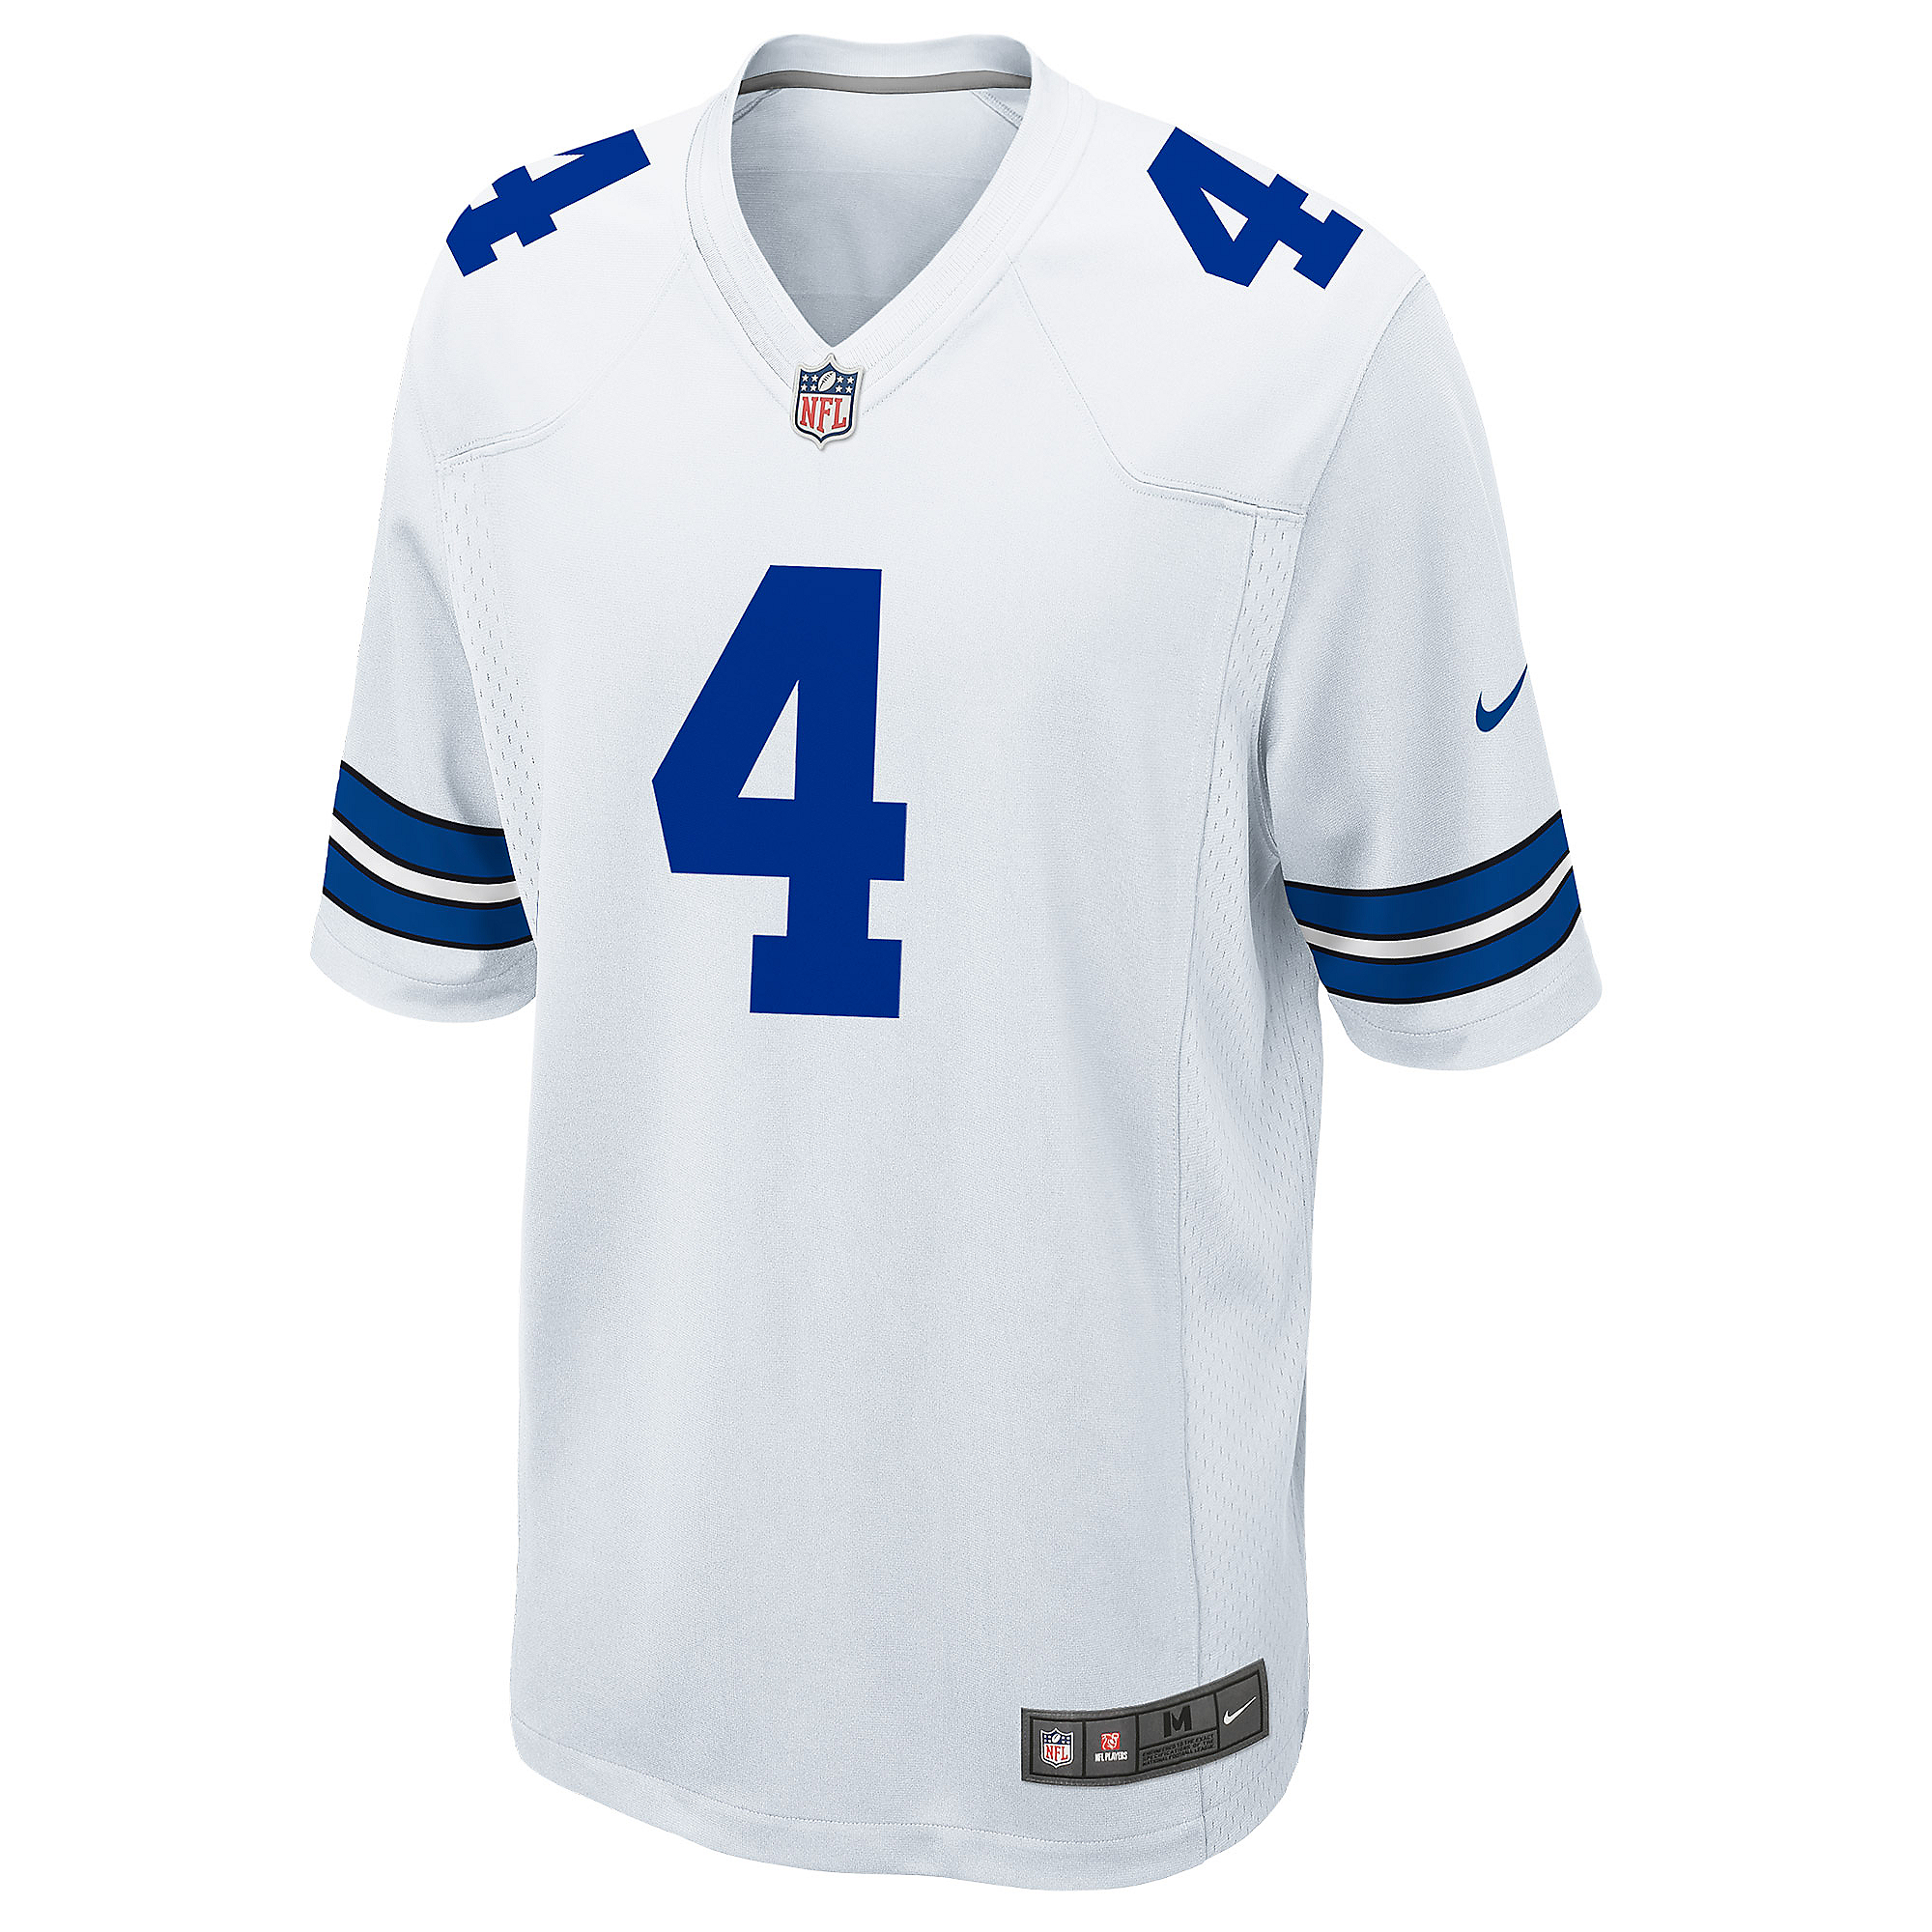 uk availability 54d9a 8653c Dallas Cowboys Dak Prescott Nike White Game Replica Jersey | Dallas Cowboys  Pro Shop